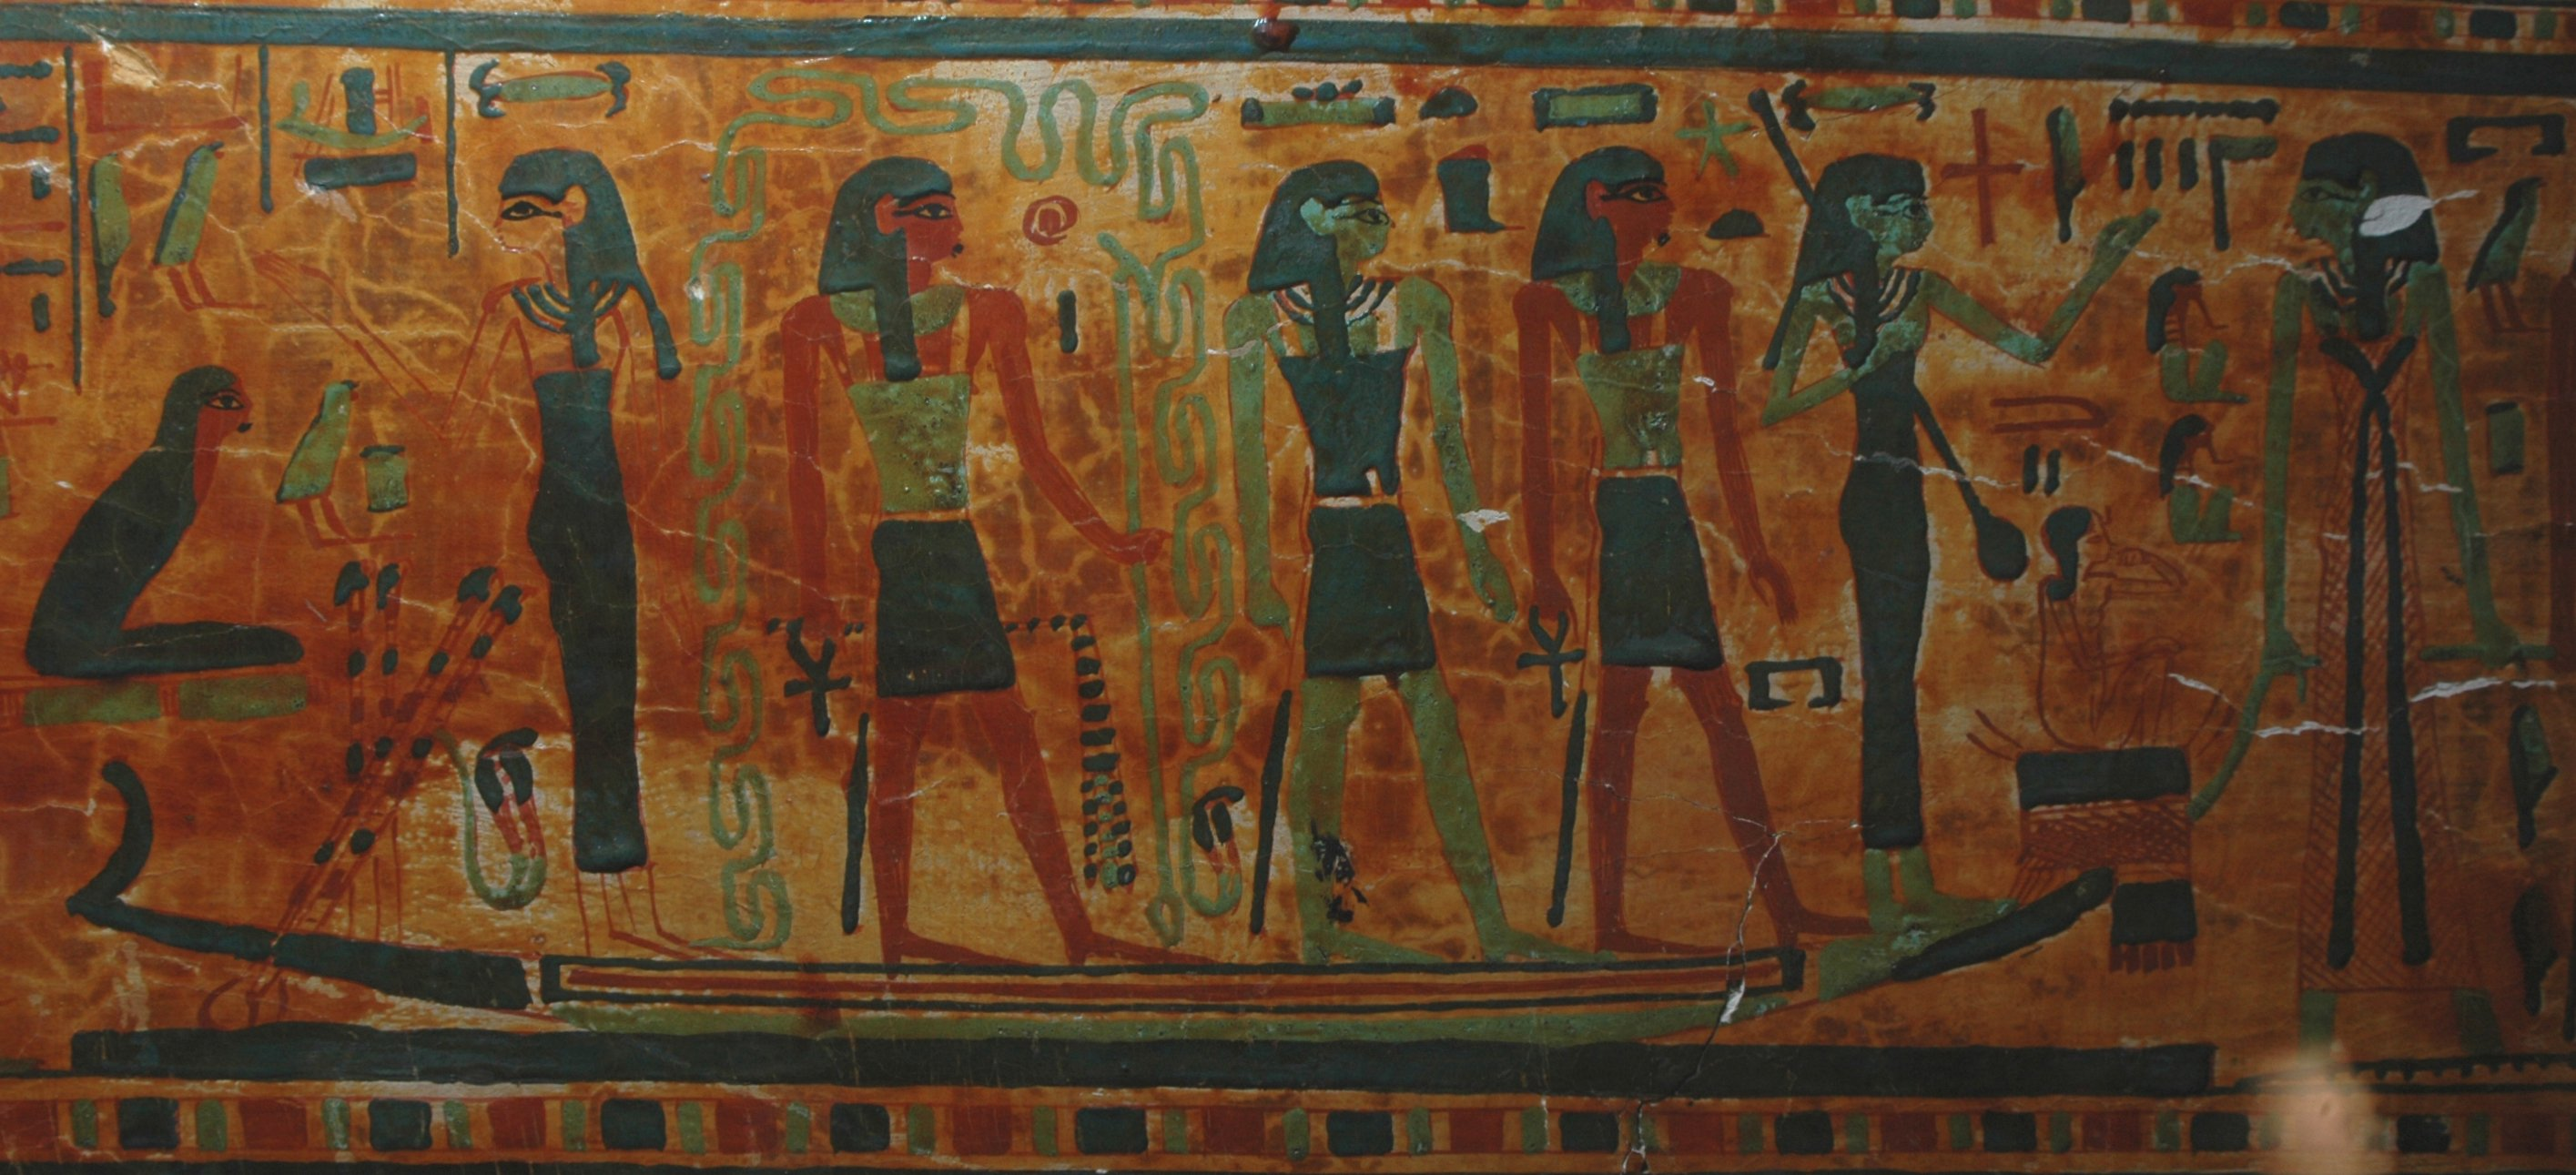 Ships of the gods of ancient egypt article ancient history ships of the gods of ancient egypt article ancient history encyclopedia publicscrutiny Image collections